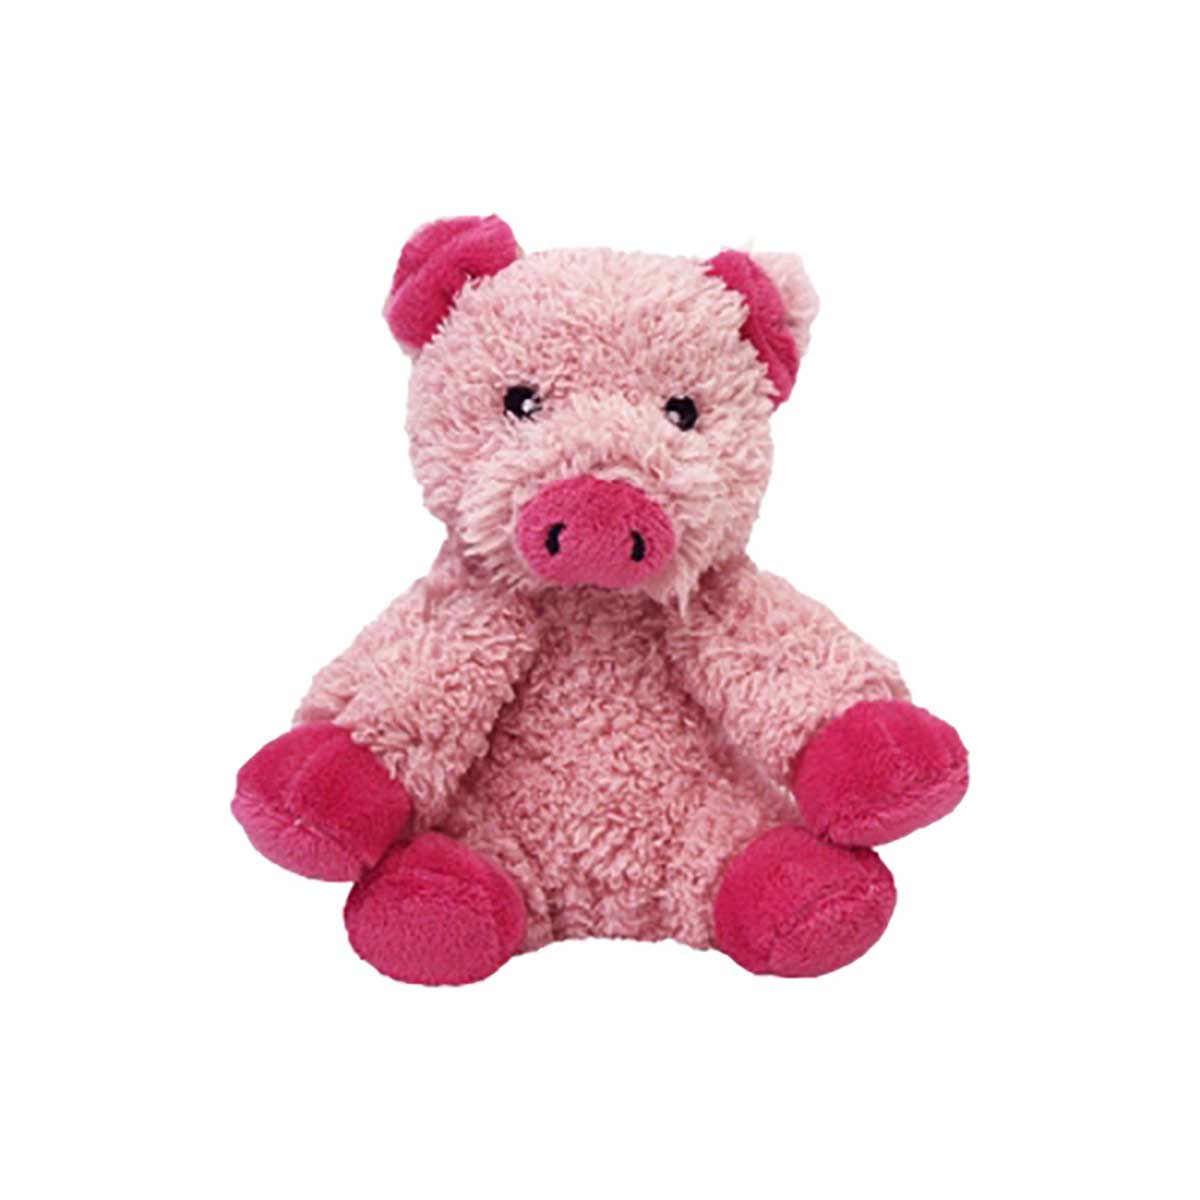 Multipet Look Who Talking Pig Toy for Dogs - 7 inch